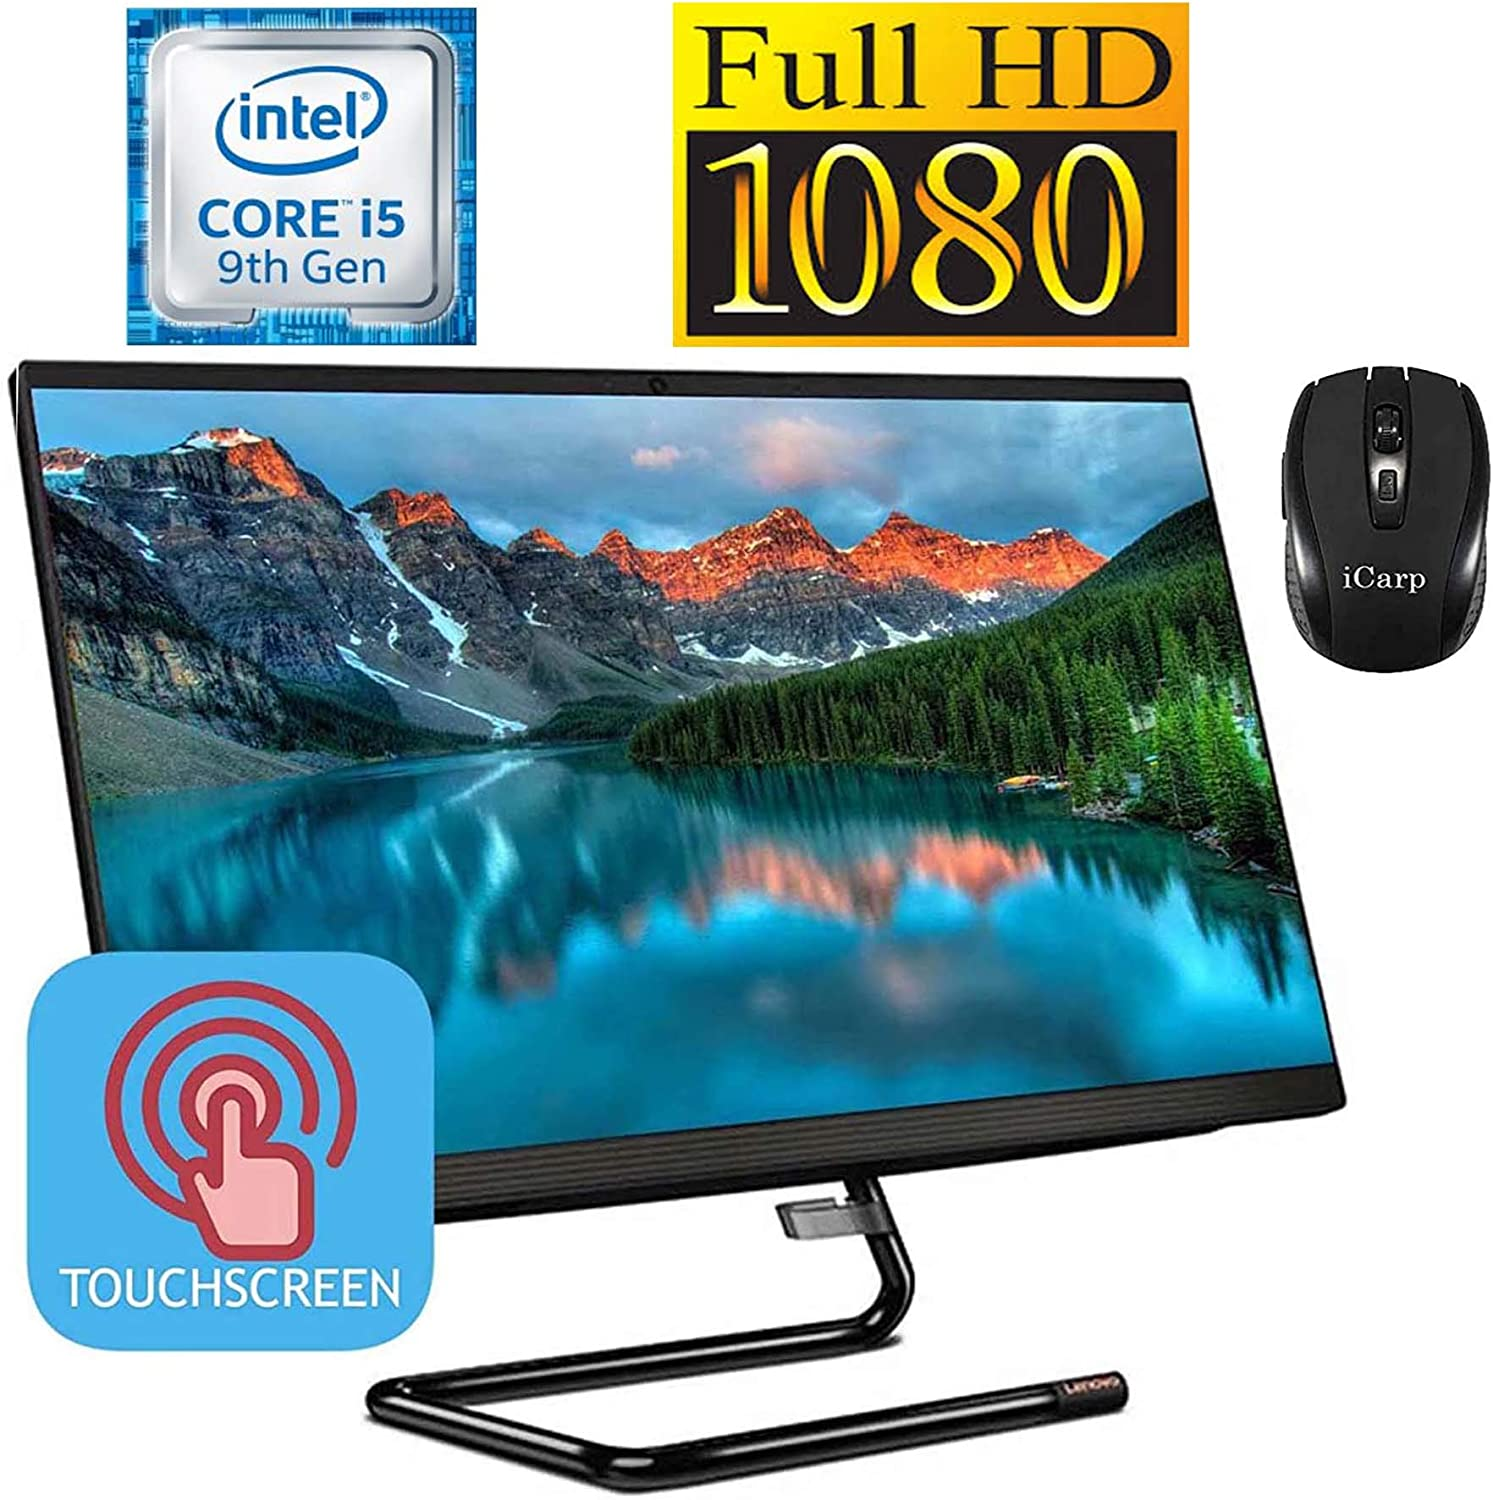 2020 LatestLenovo IdeaCentre A340 24 All-in-One Desktop 23.8 inch FHD IPS Touchscreen 9th Gen Intel Hexa-Core i5-9400T(Beats i7-7700HQ) 8GB DDR4 256GB PCIe SSD 1TB HDD Win 10 + iCarp Wireless Mouse